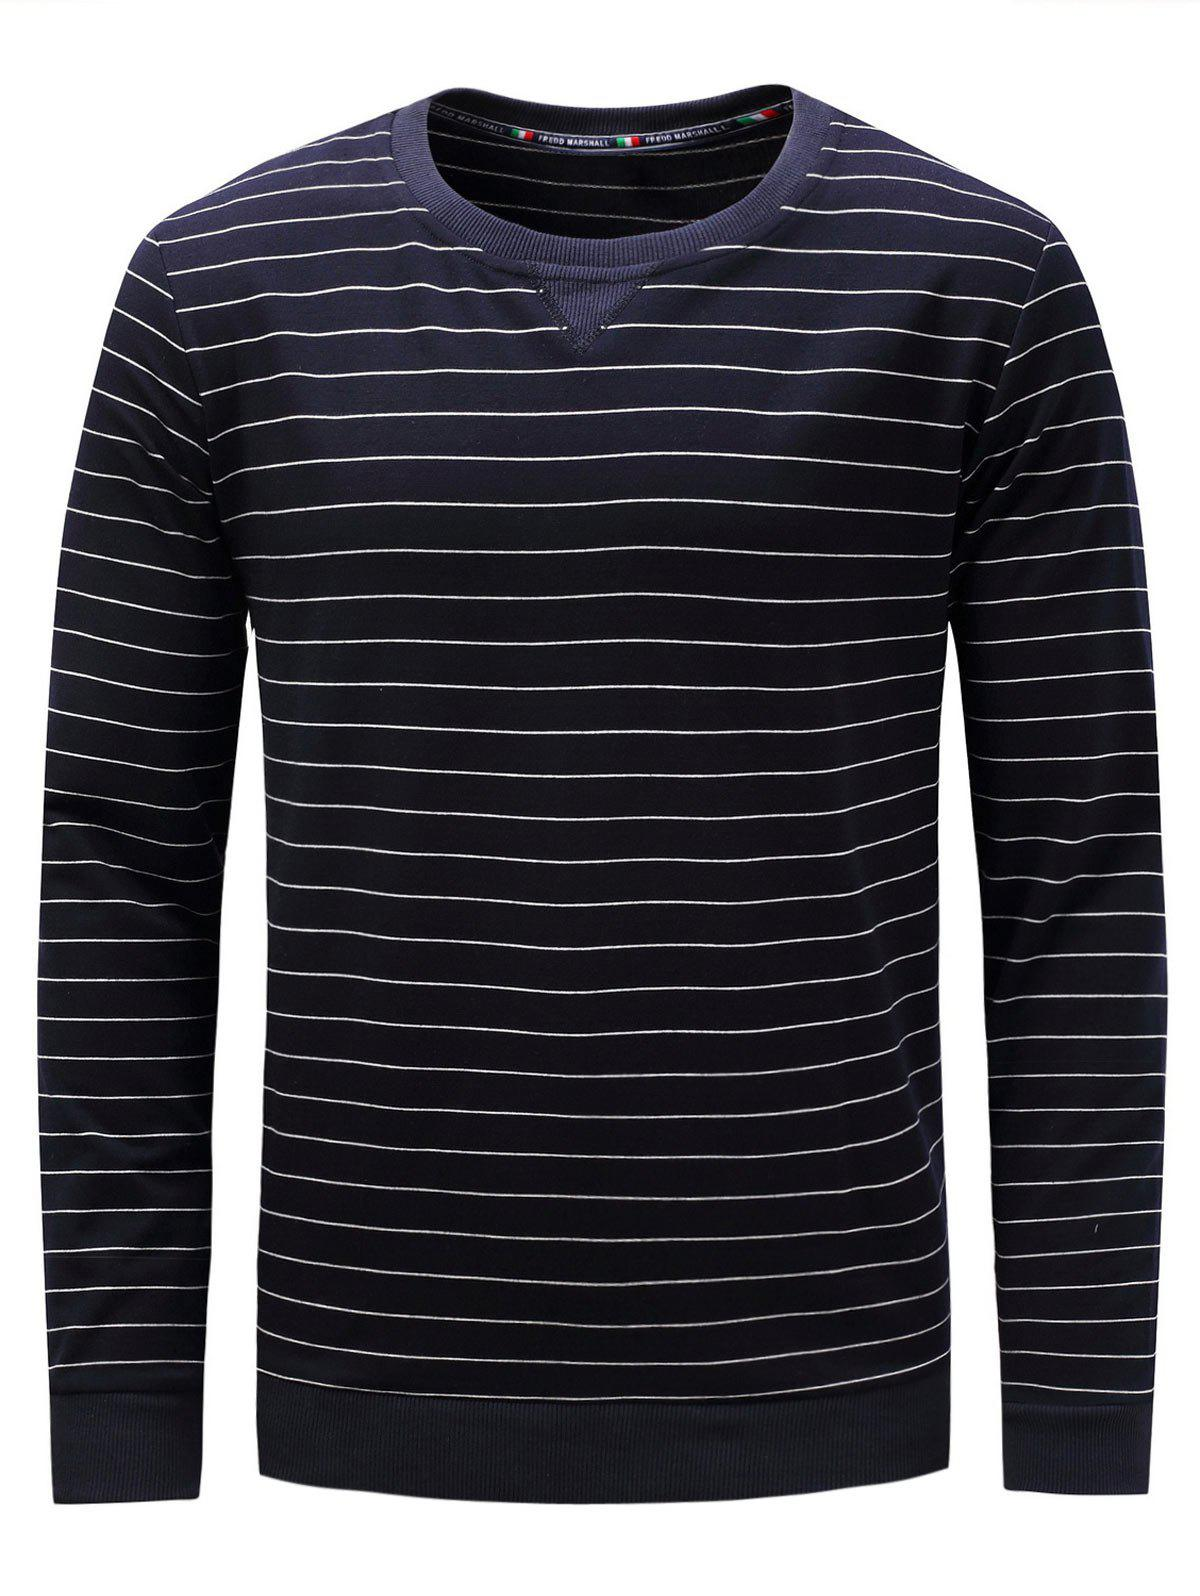 Crew Neck Long Sleeve Stripe Sweatshirt - CADETBLUE L